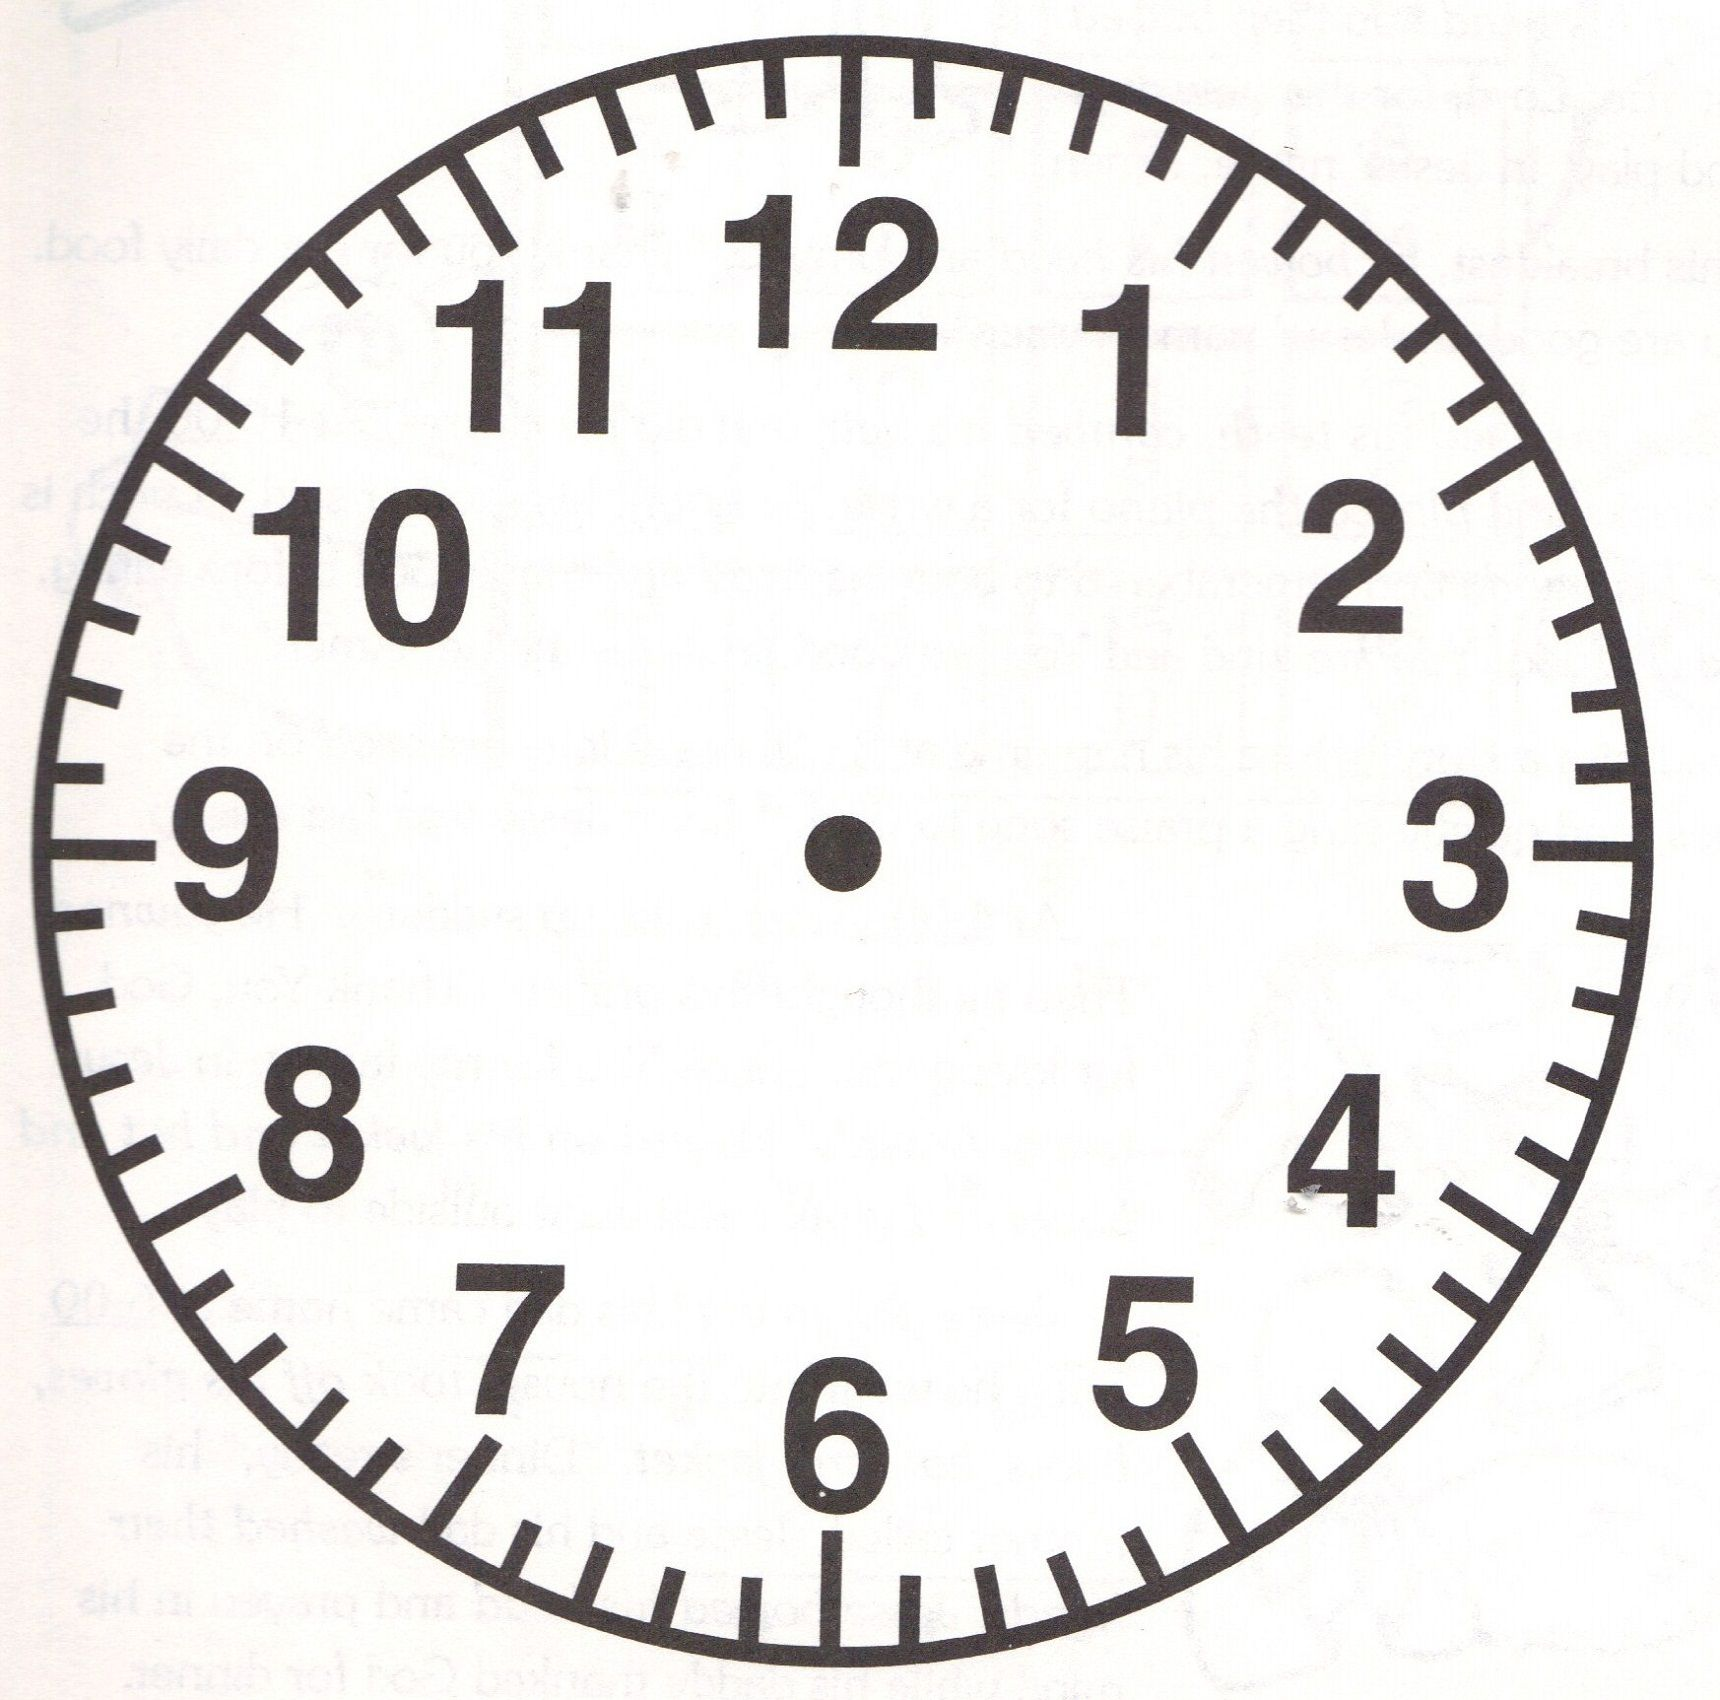 Blank Clock Faces For Exercises In